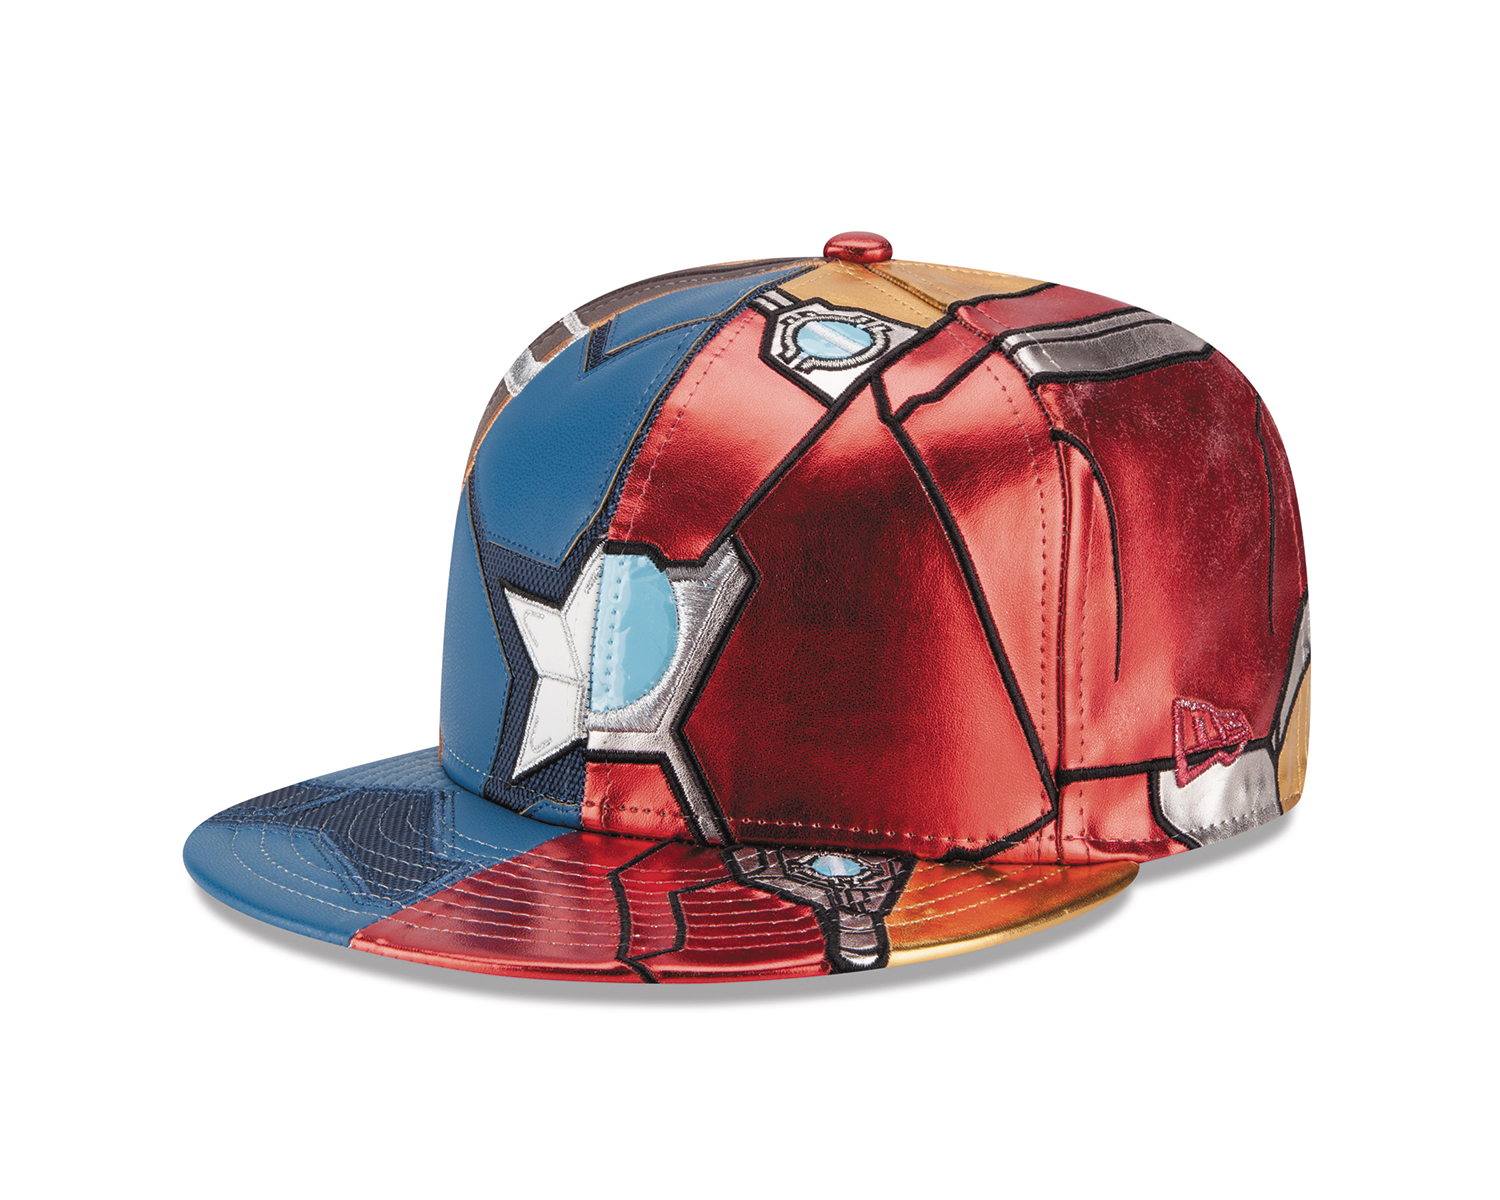 CAPTAIN AMERICA 3 CHARACTER ARMOR SPLIT FITTED CAP SZ 7 3/8